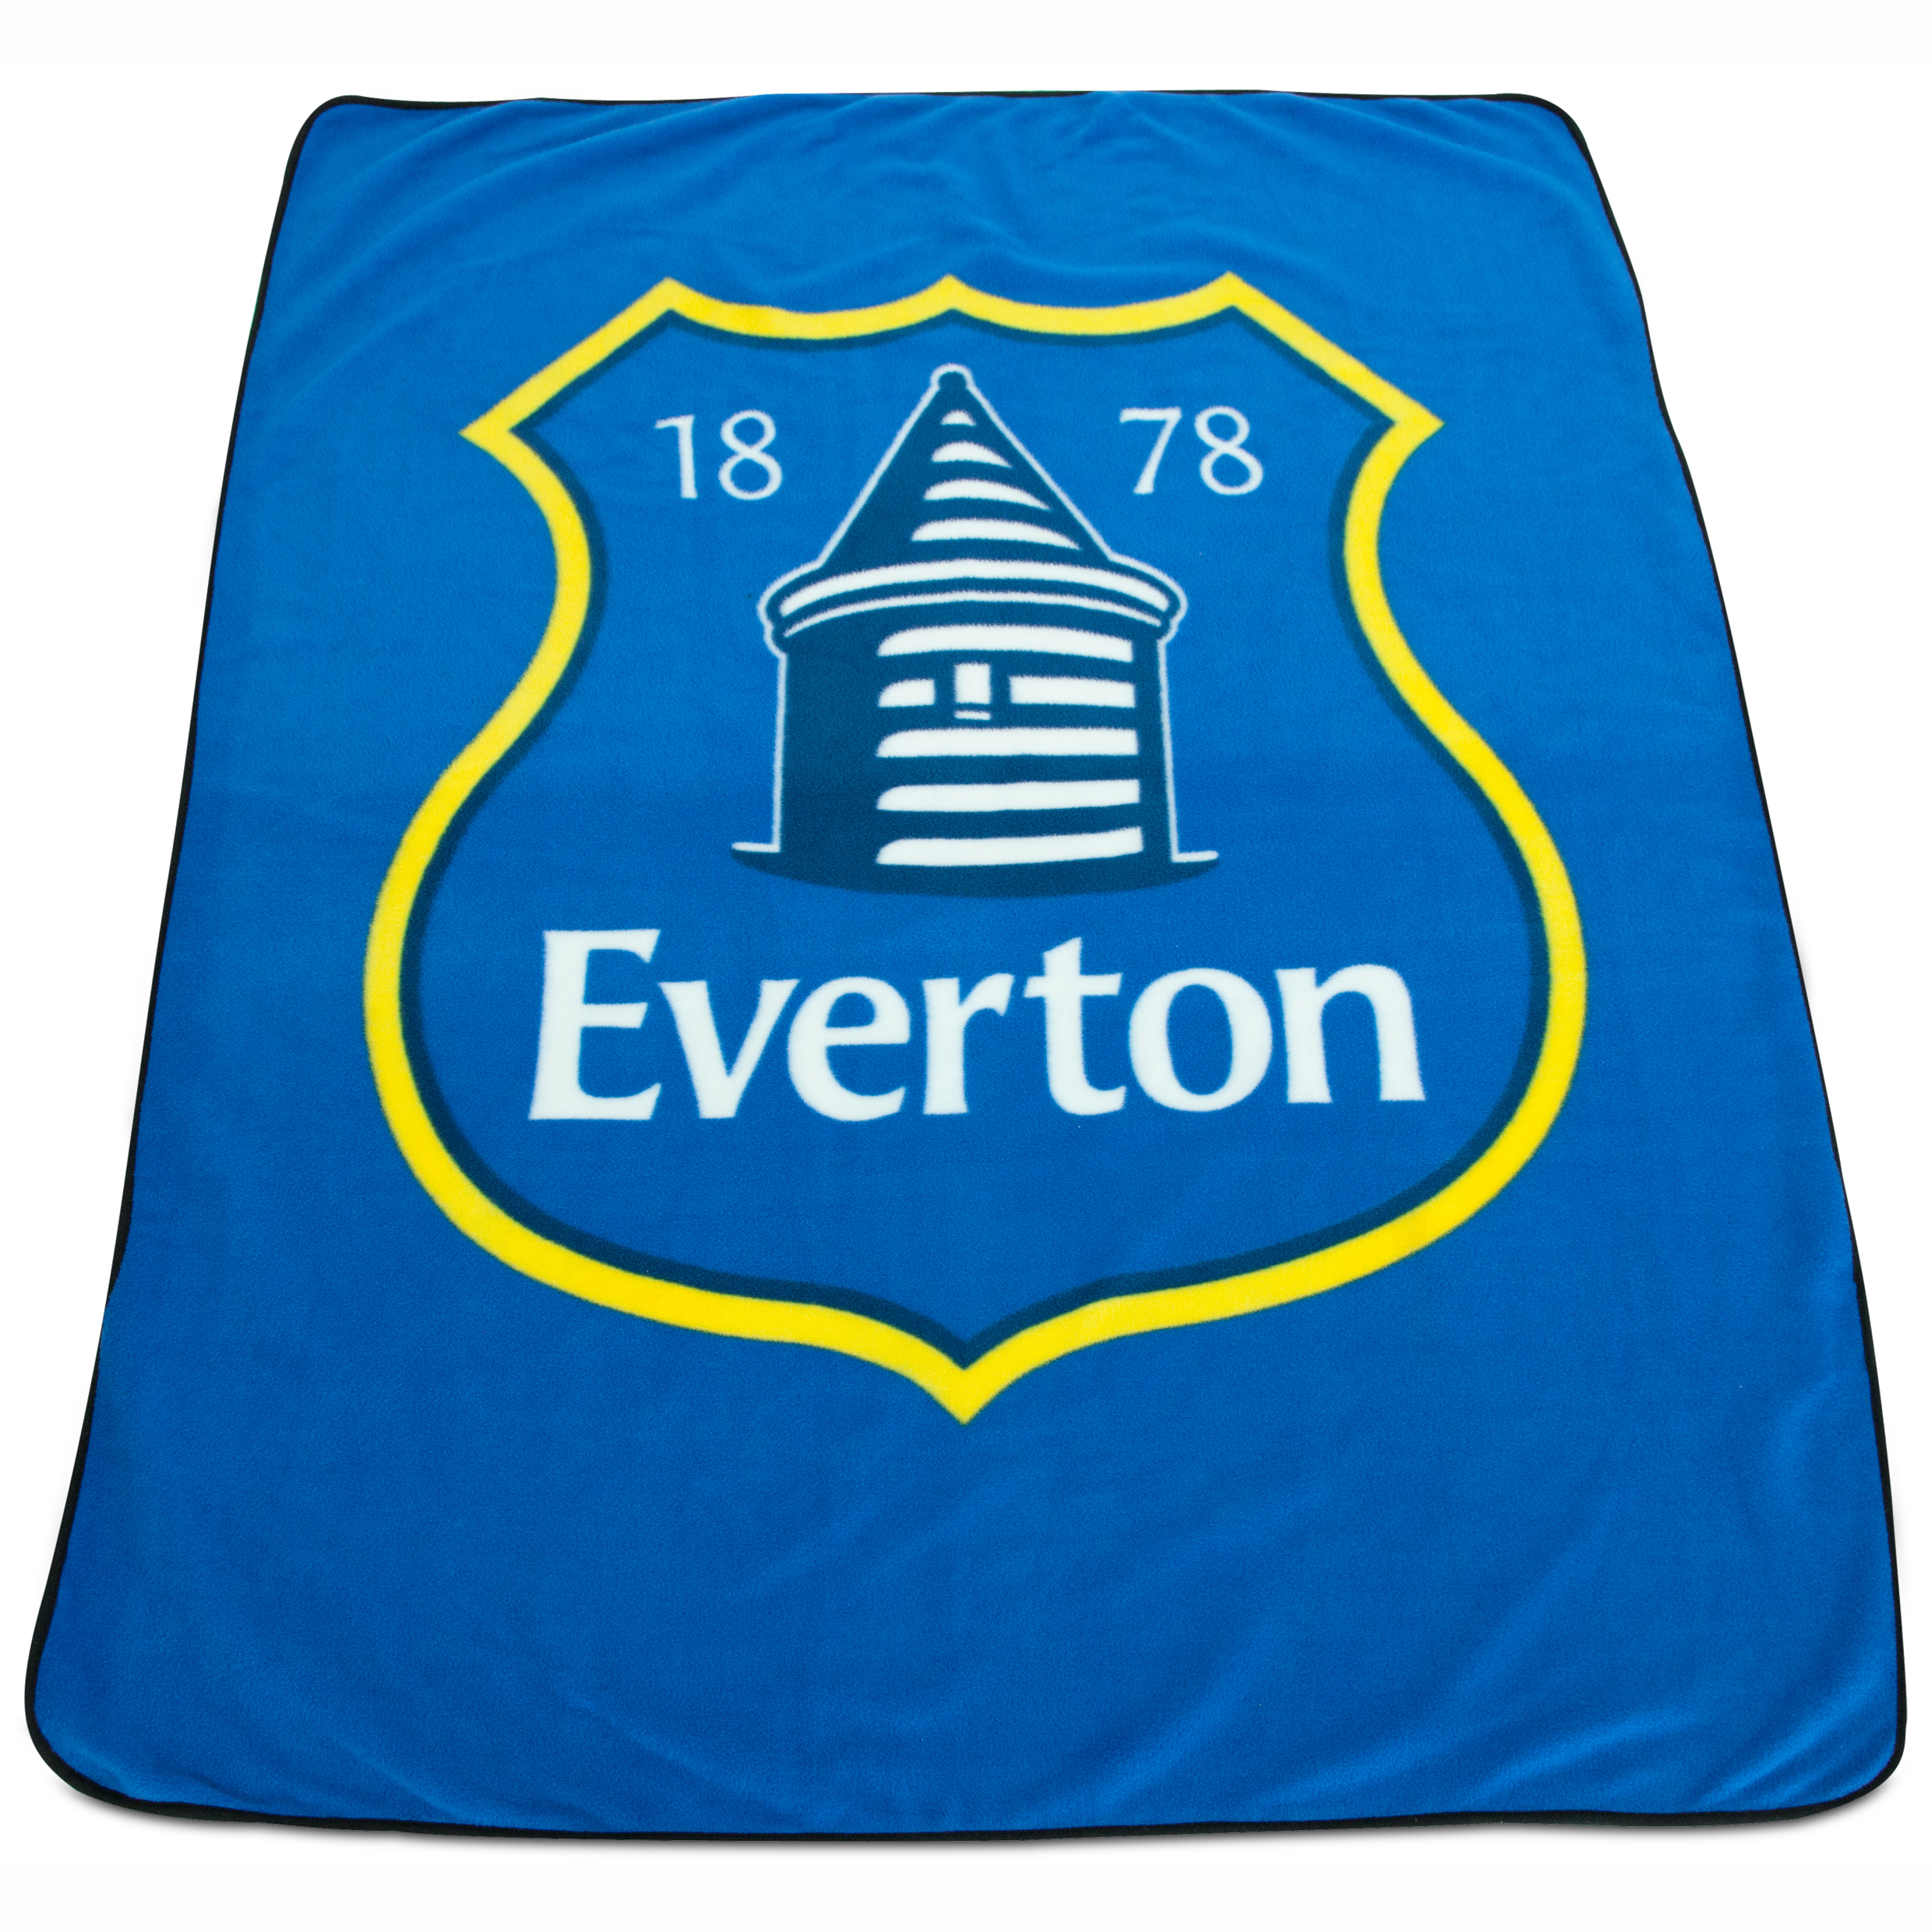 Everton Crest Fleece Throw